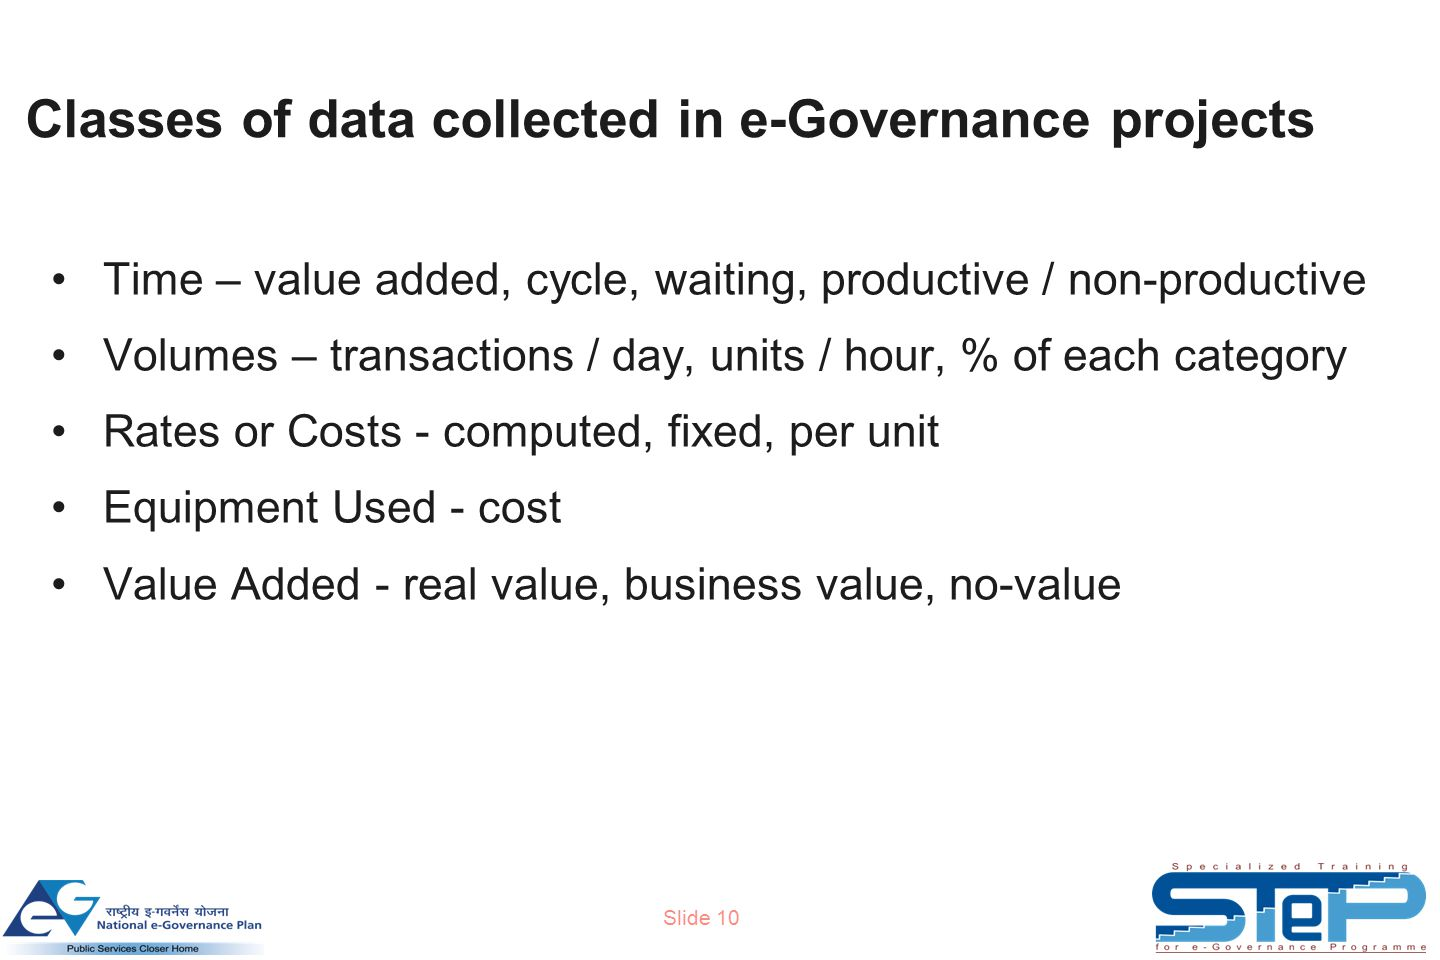 Slide 10 Classes of data collected in e-Governance projects Time – value added, cycle, waiting, productive / non-productive Volumes – transactions / day, units / hour, % of each category Rates or Costs - computed, fixed, per unit Equipment Used - cost Value Added - real value, business value, no-value